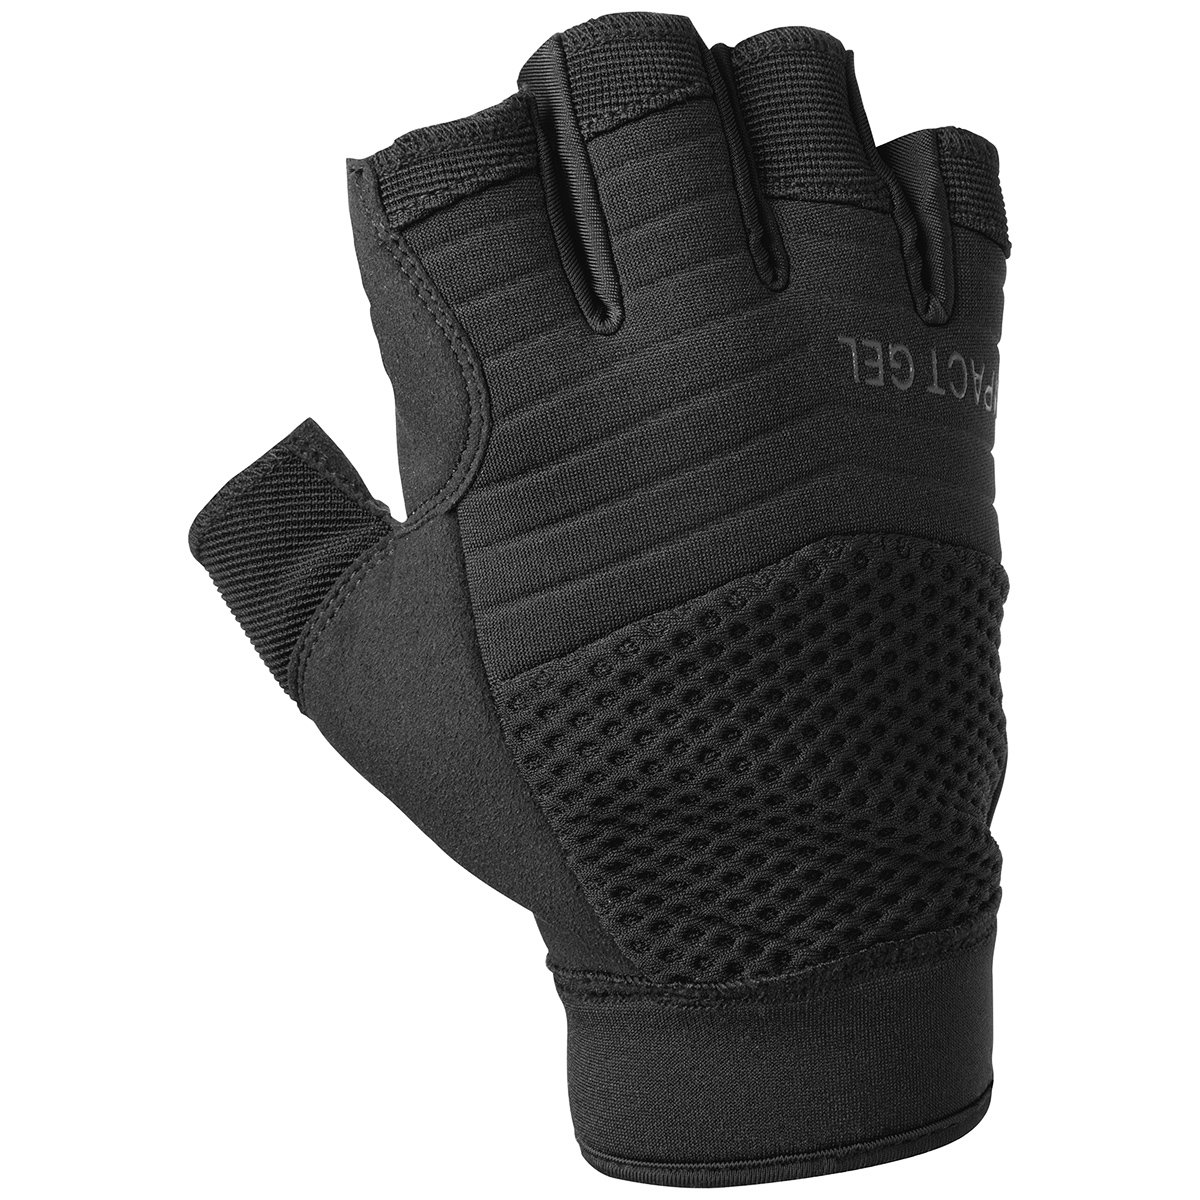 Fingerless impact gloves - Military Airsoft Patrol Hfg Fingerless Tactical Army Combat